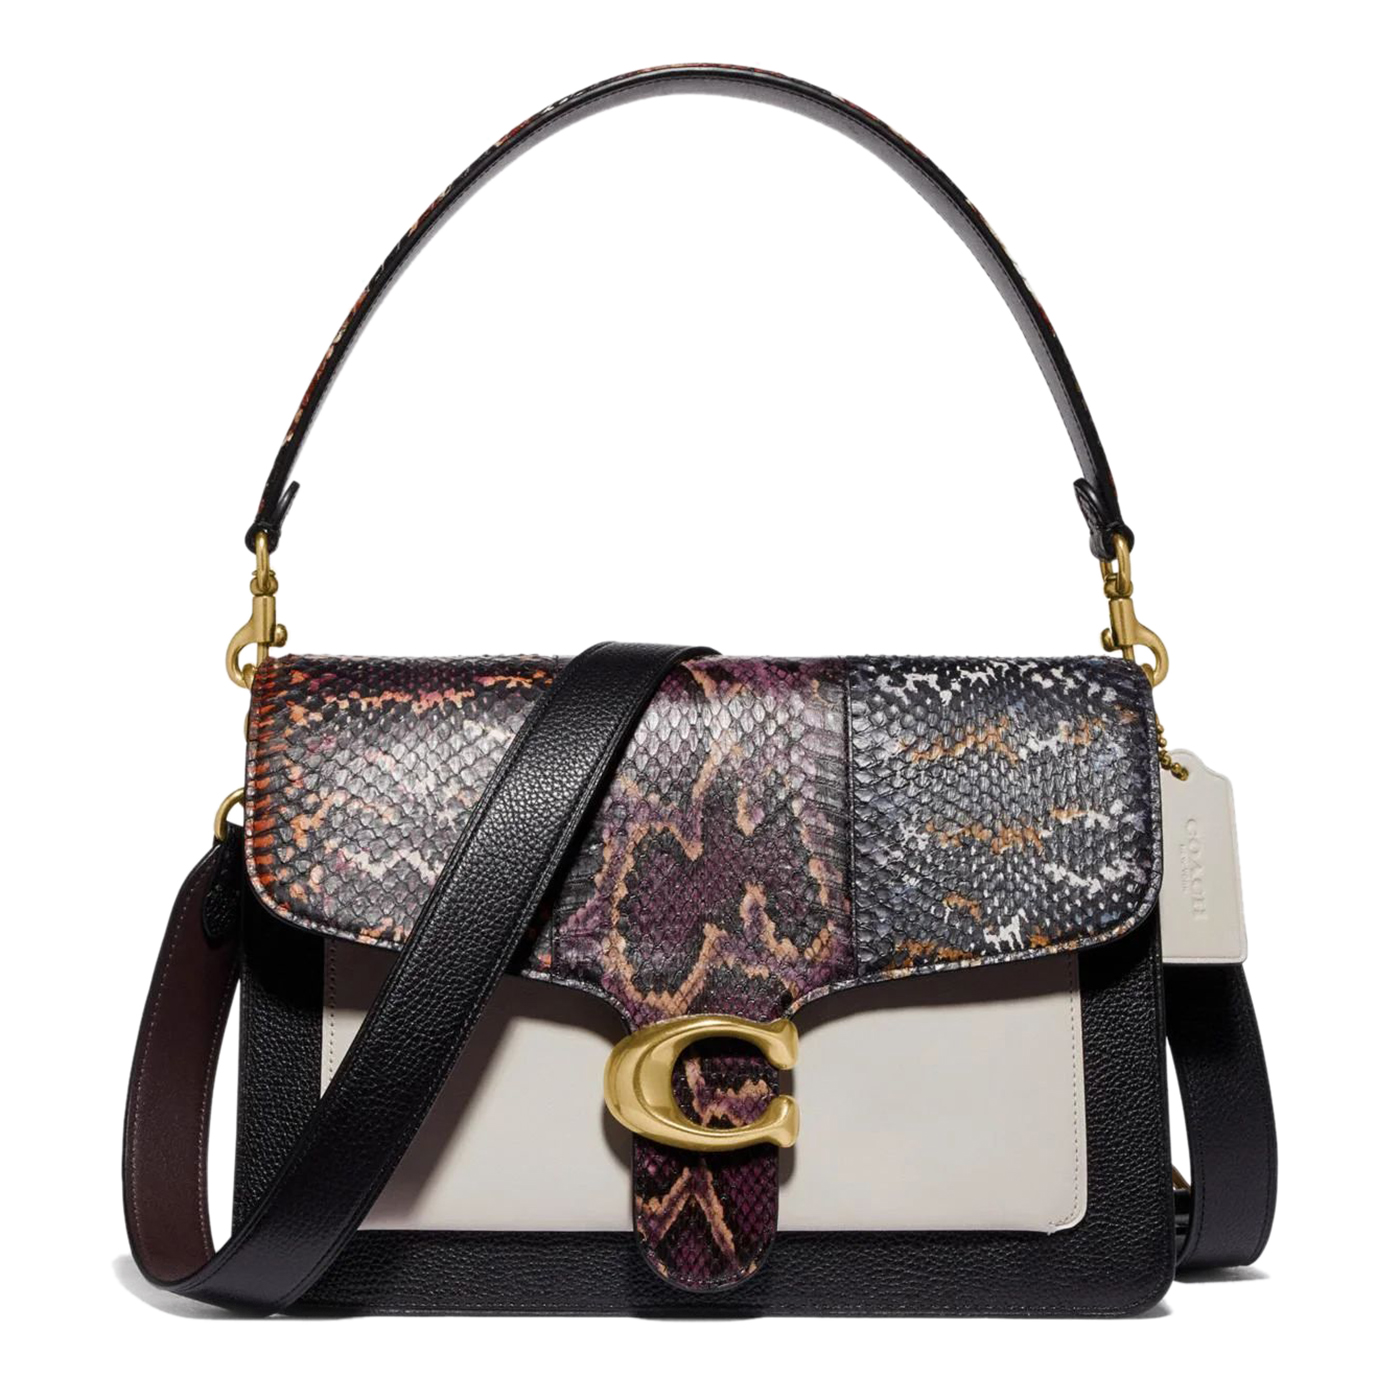 Coach Tabby Shoulder Bag In Snakeskin